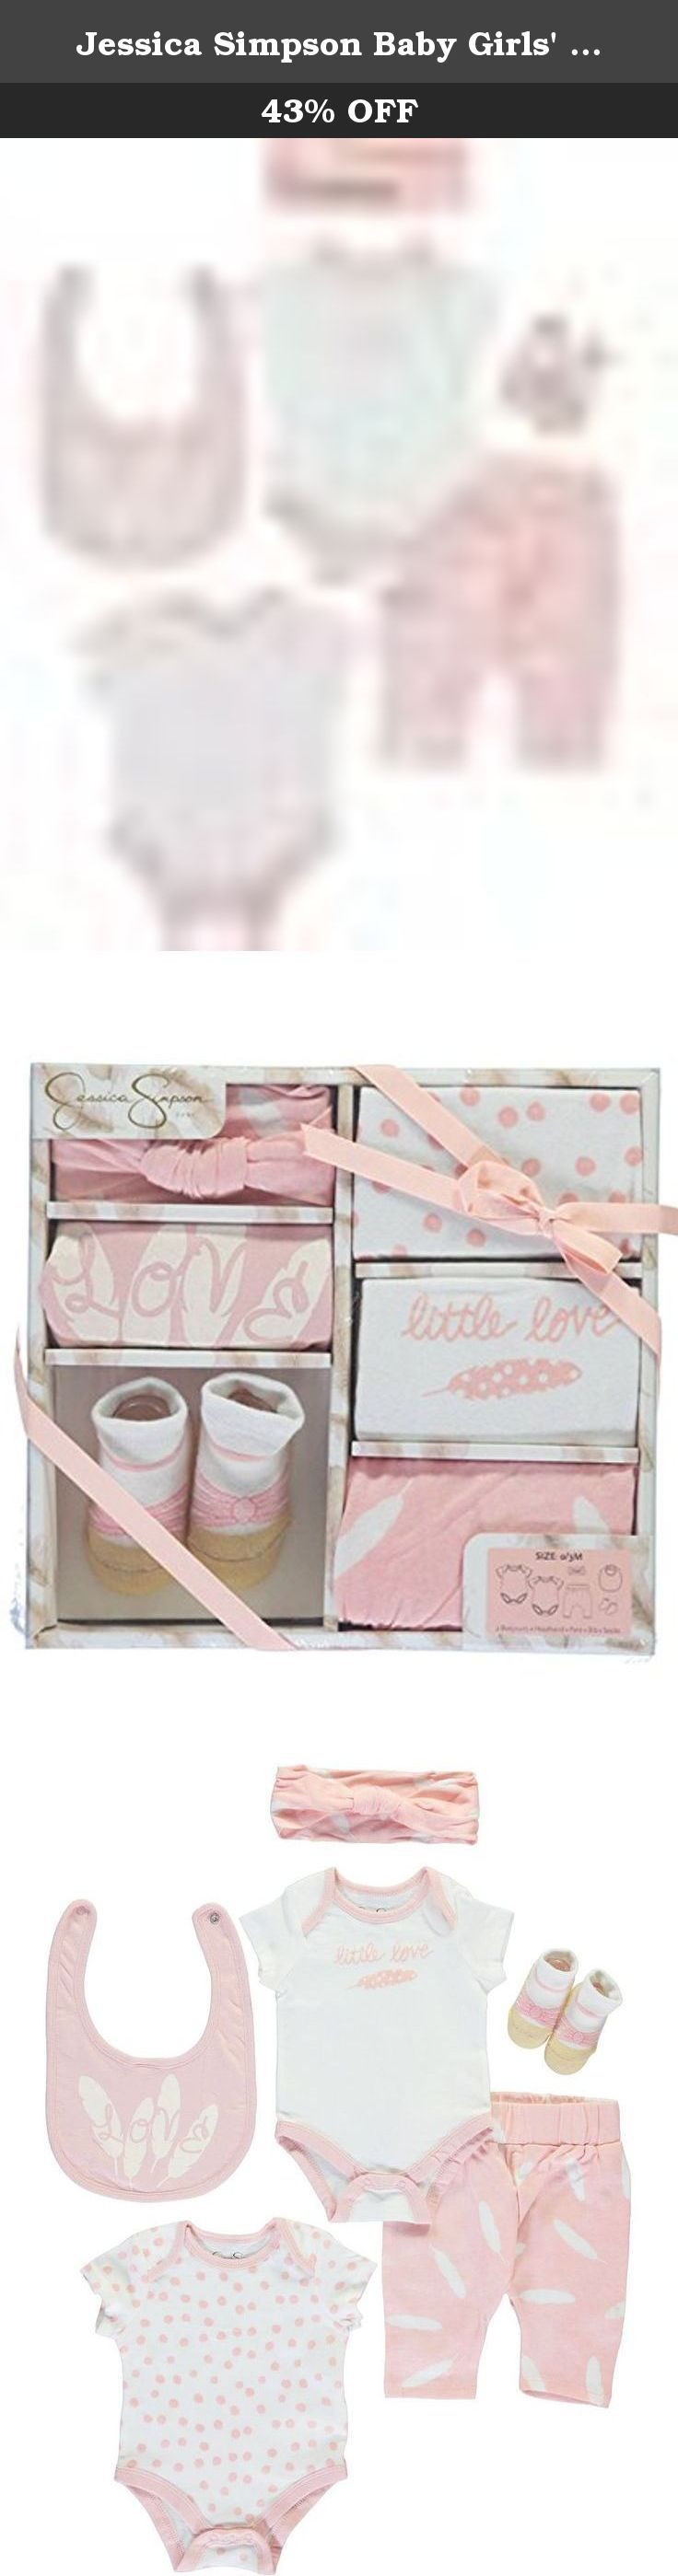 """Jessica Simpson Baby Girls' """"Little Love"""" 6-Piece Layette Gift Set - pink, 0 -. Give a new arrival extra elegance with this boxed gift set from Jessica Simpson! Jessica Simpson 6-piece layette set 2 bodysuits (100% cotton) Headband (100% cotton) Pants (100% cotton) Bib (100% cotton) Socks (70% cotton, 26% polyester, 4% spandex) Machine wash cold, inside out Imported."""